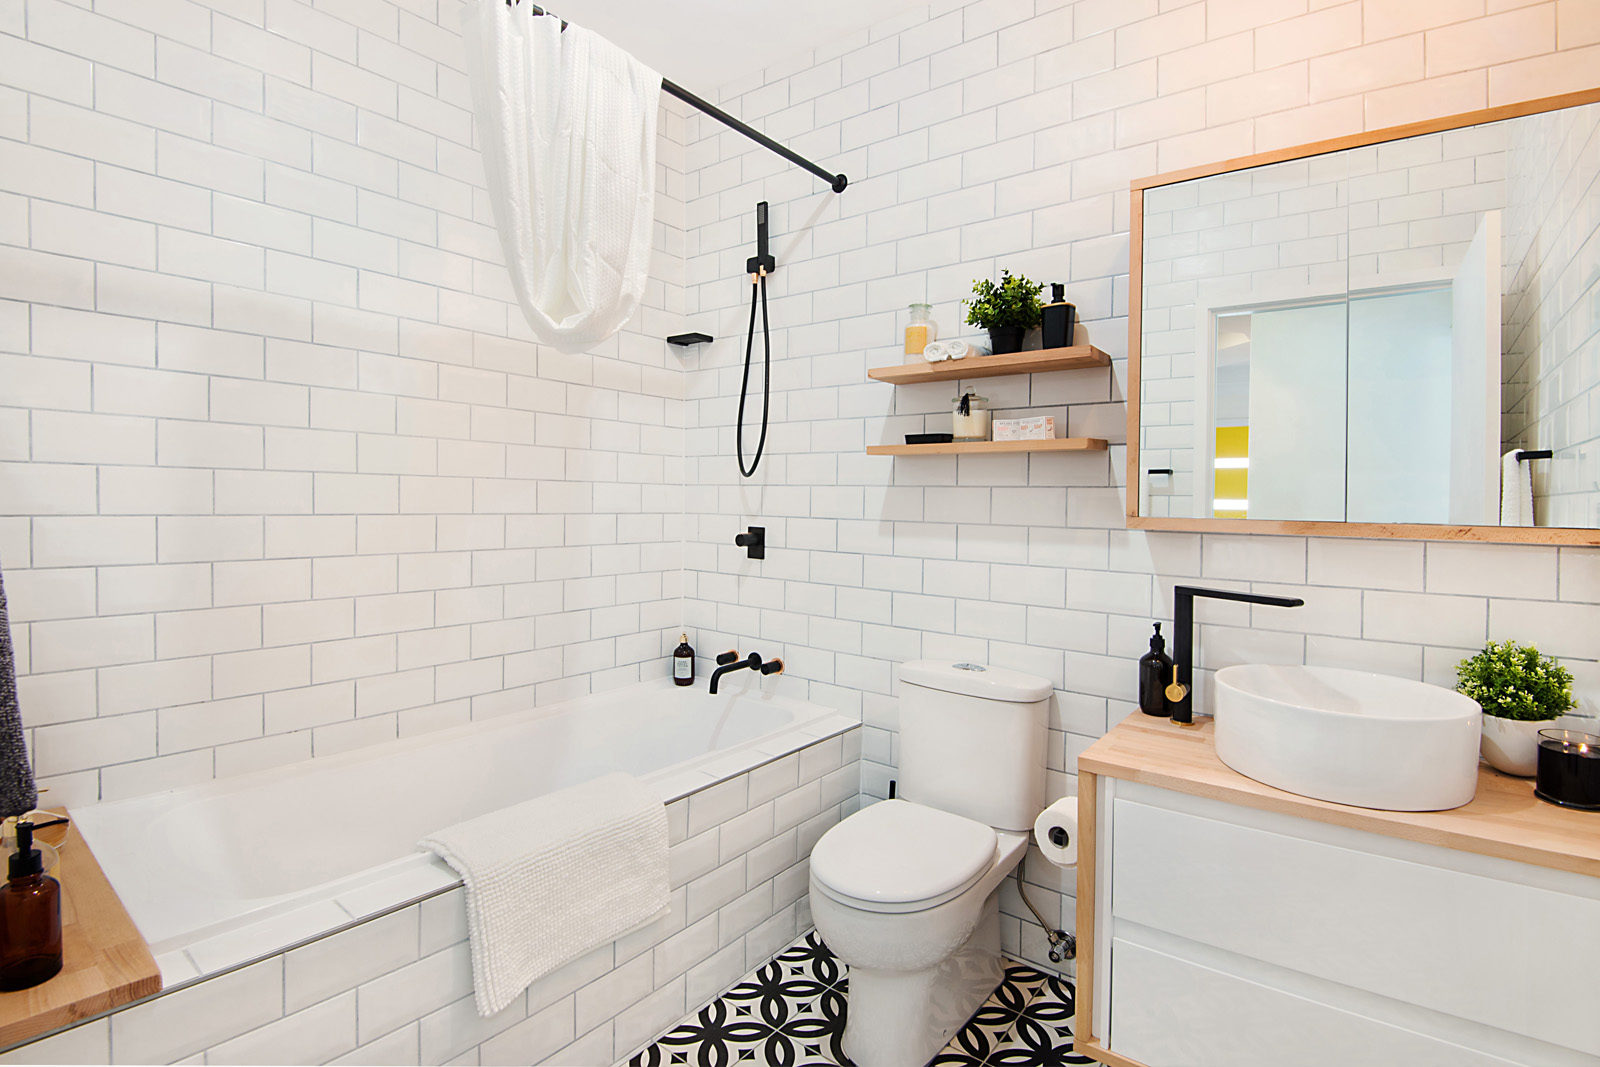 Cherie-Barber_Renovating-For-Profit_Colyton-Bathroom-after